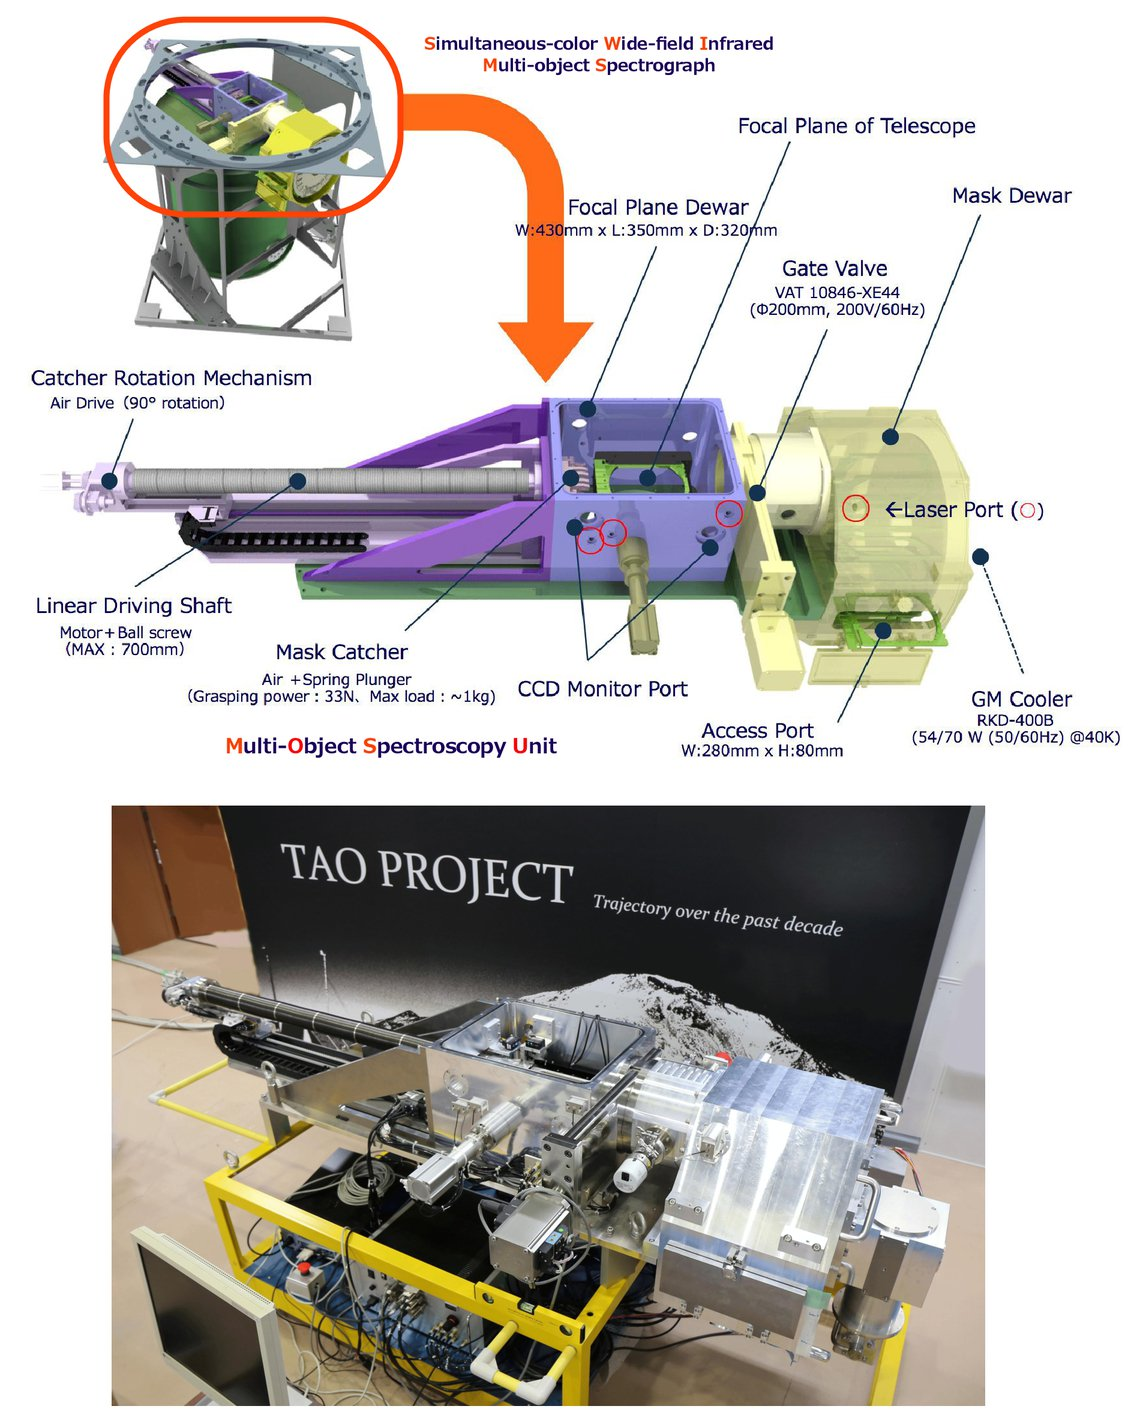 Development Of Multi Object Spectroscopy Unit For Simultaneous Color Opto Interrupter Repeatability Gear Diagram 00201 Psisdg9147 91476n Page 2 1